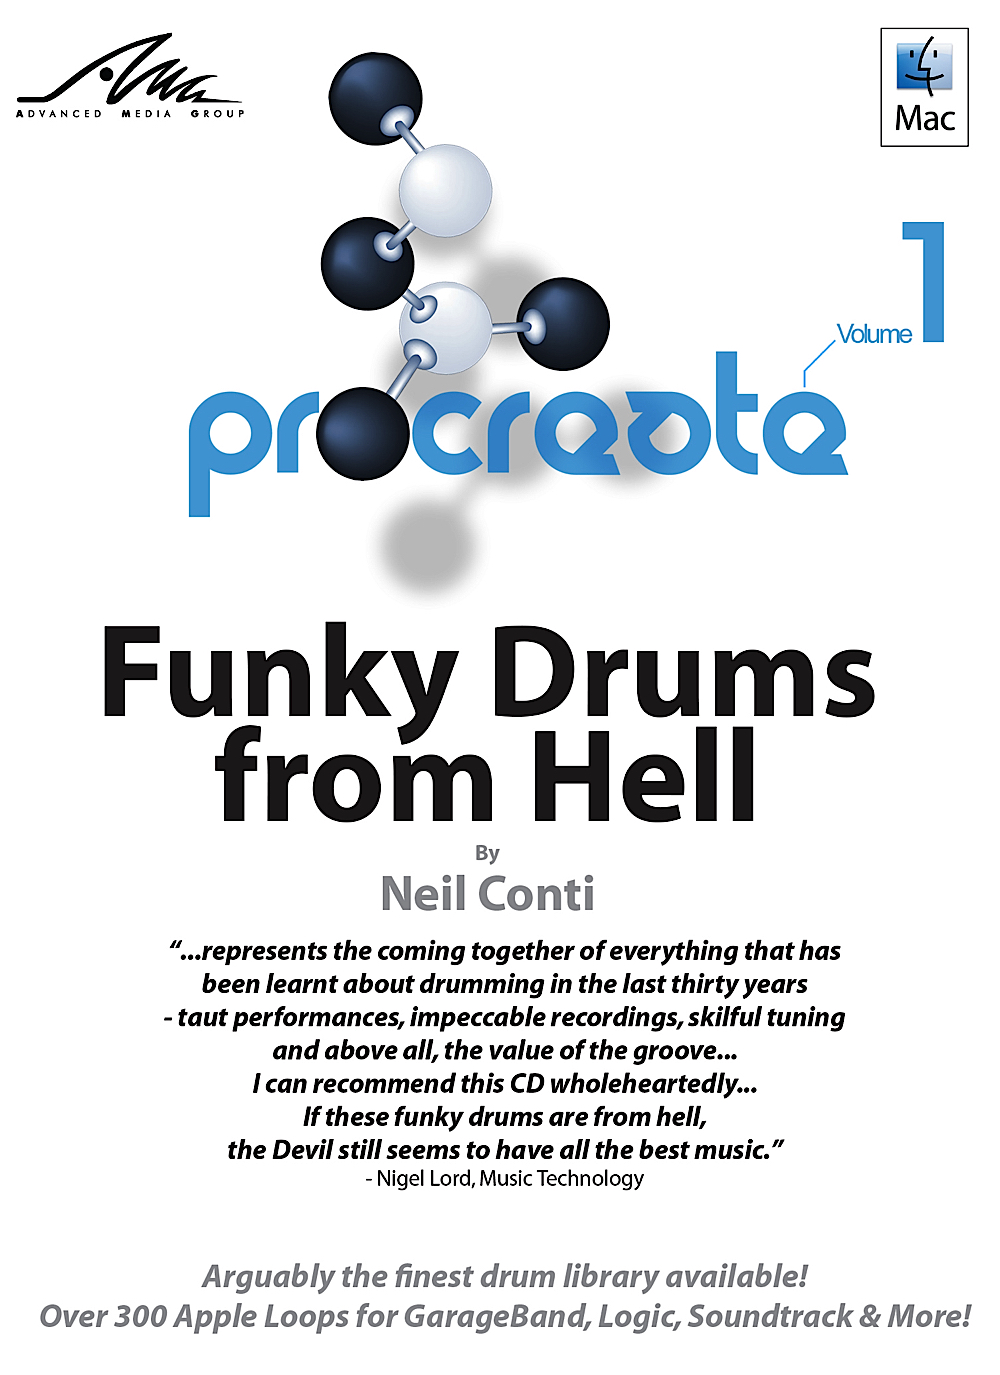 Funky Drums from Hell - Neil Conti - Superb Funky Drum Apple Loops